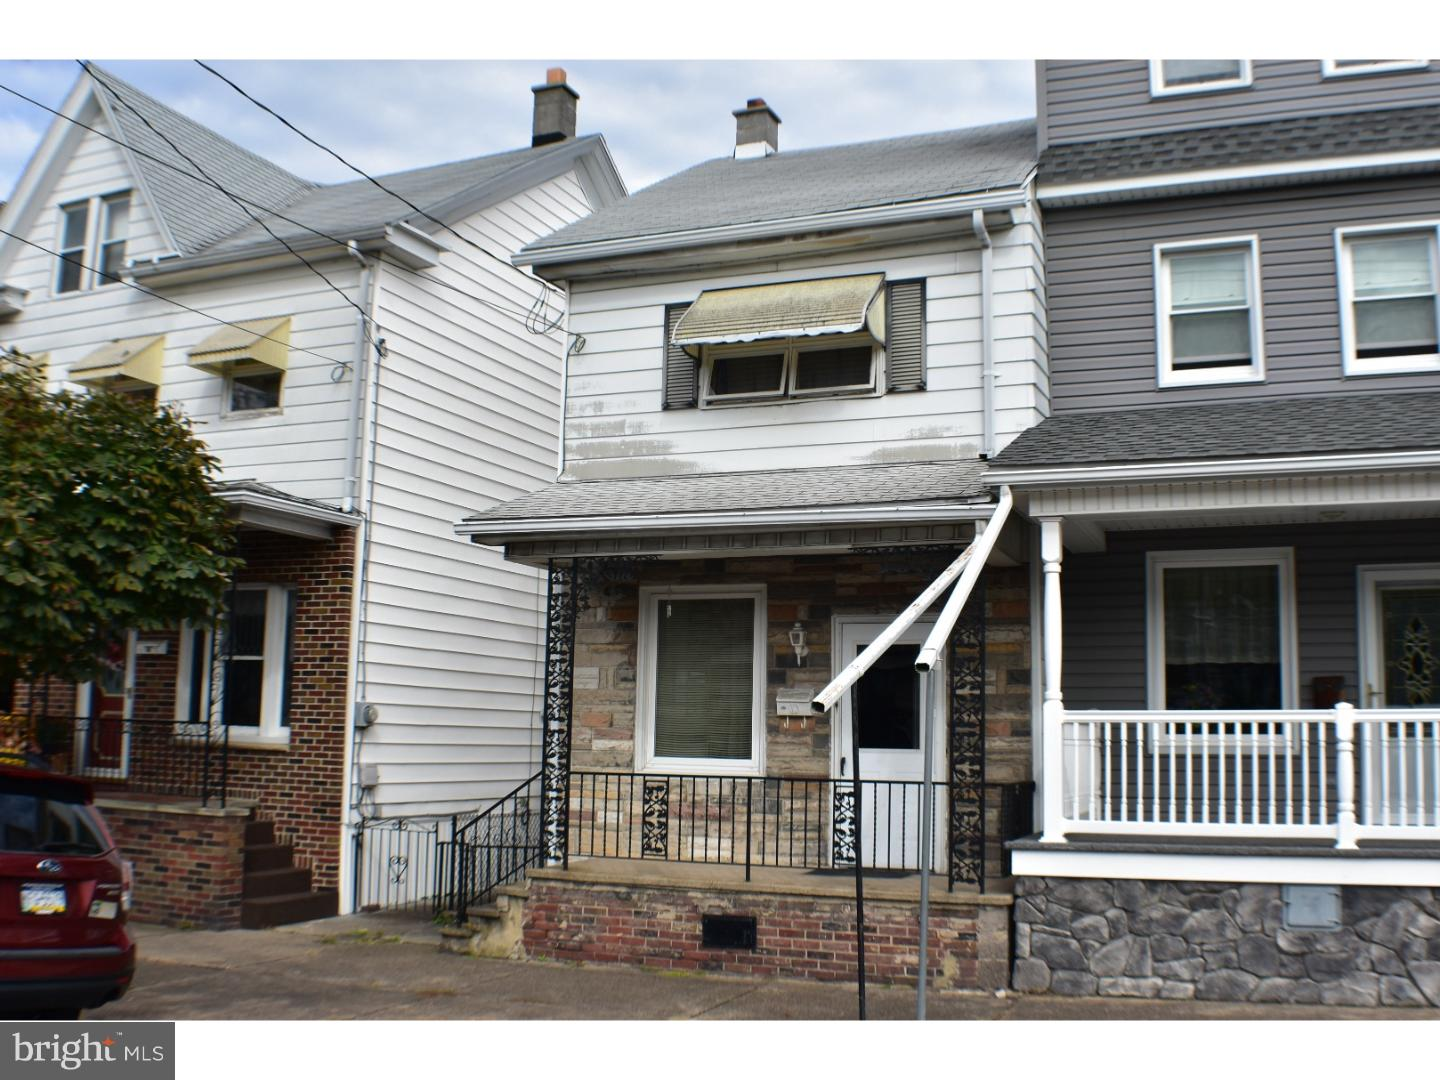 327 W 5TH, MT. CARMEL, PA 17851